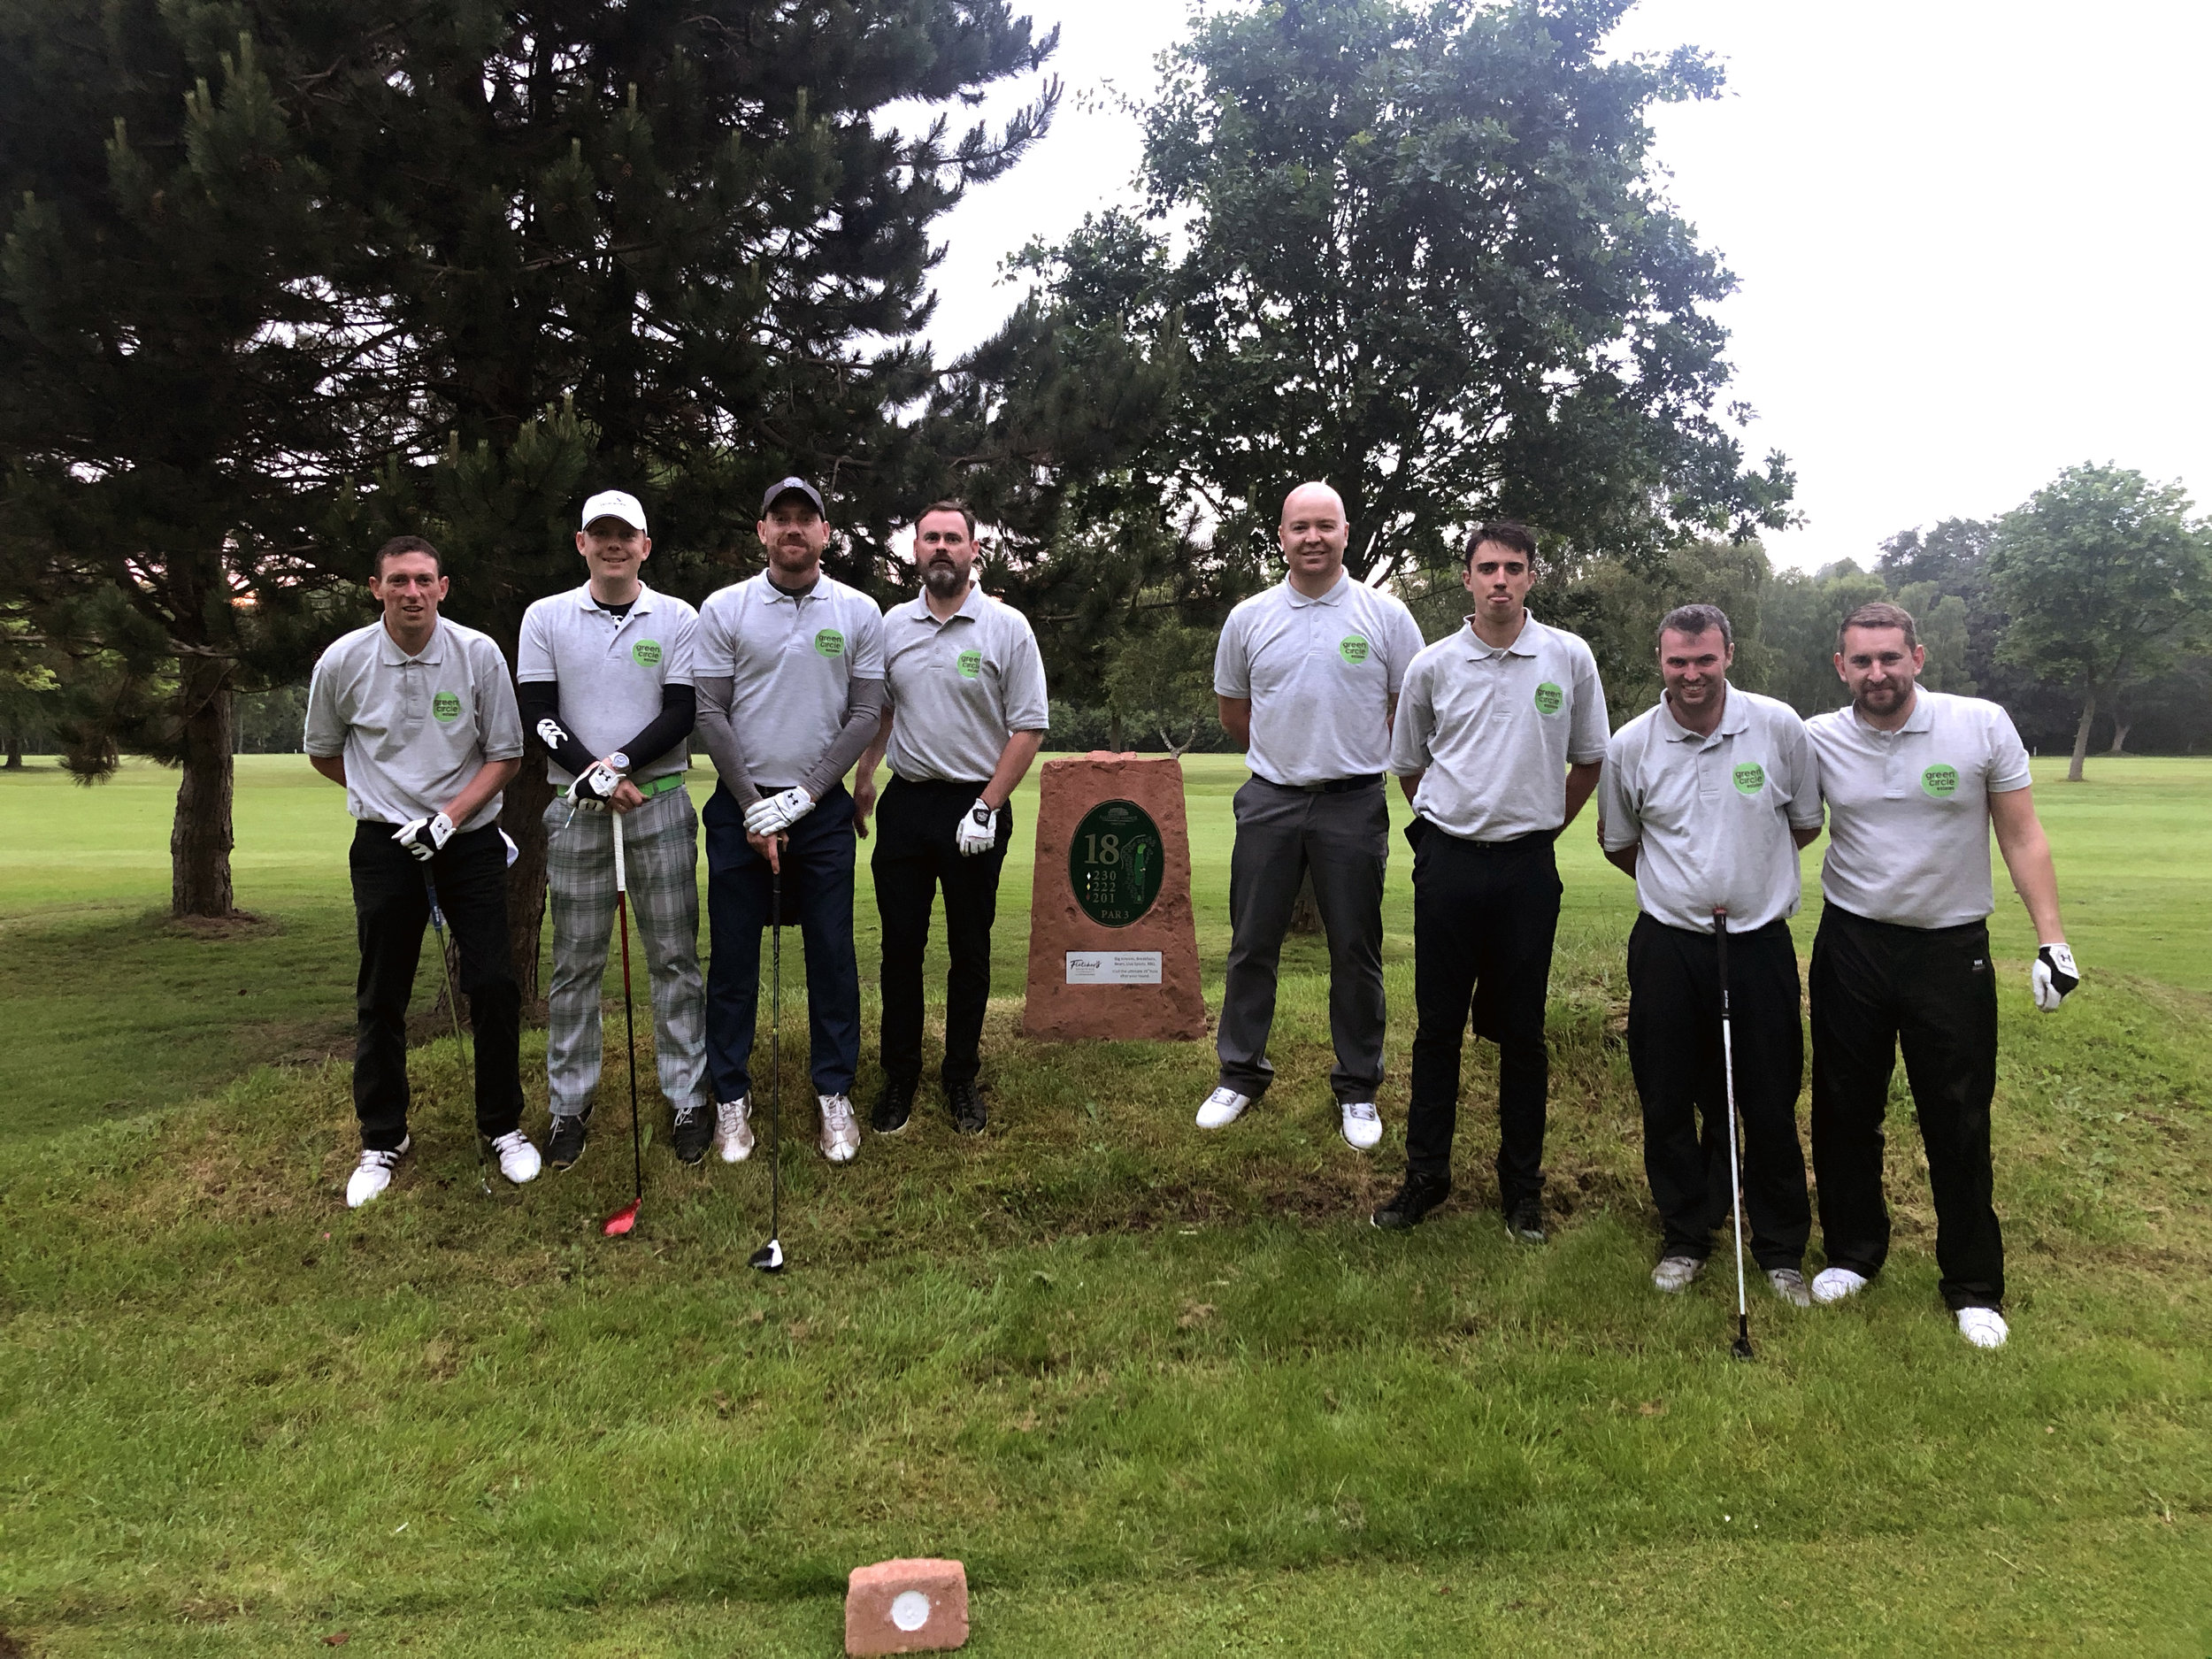 From Left to right Chris Williams, Craig Coley, Dave Roche, Nick Hilton, Bryan Joelson-Mulhall, Josh Hall, James Houghton and Edward Ridding.